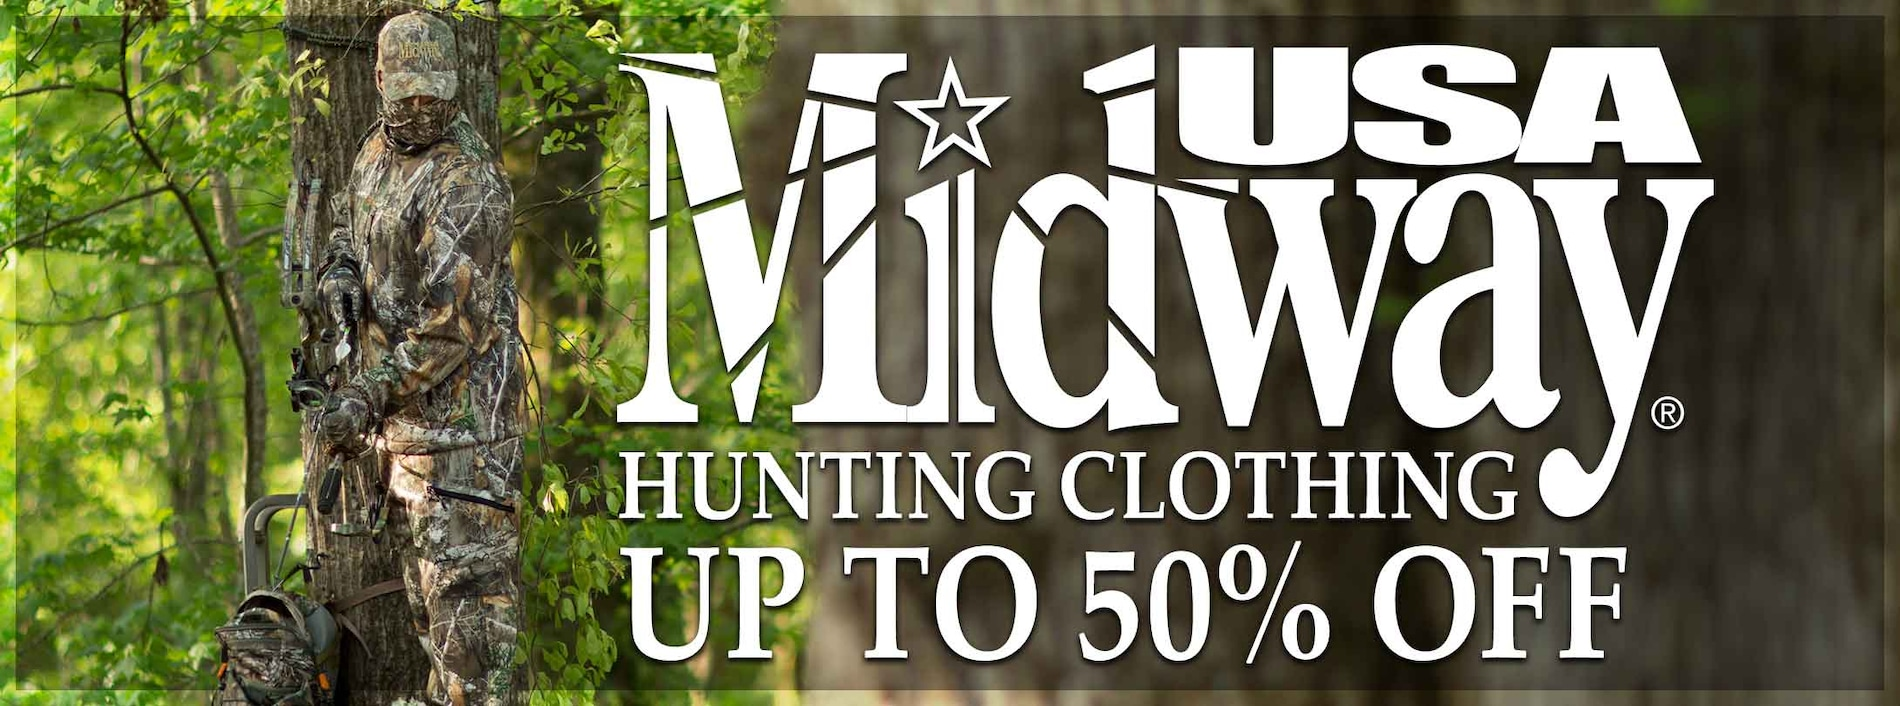 Shop MidwayUSA Hunting Clothing!